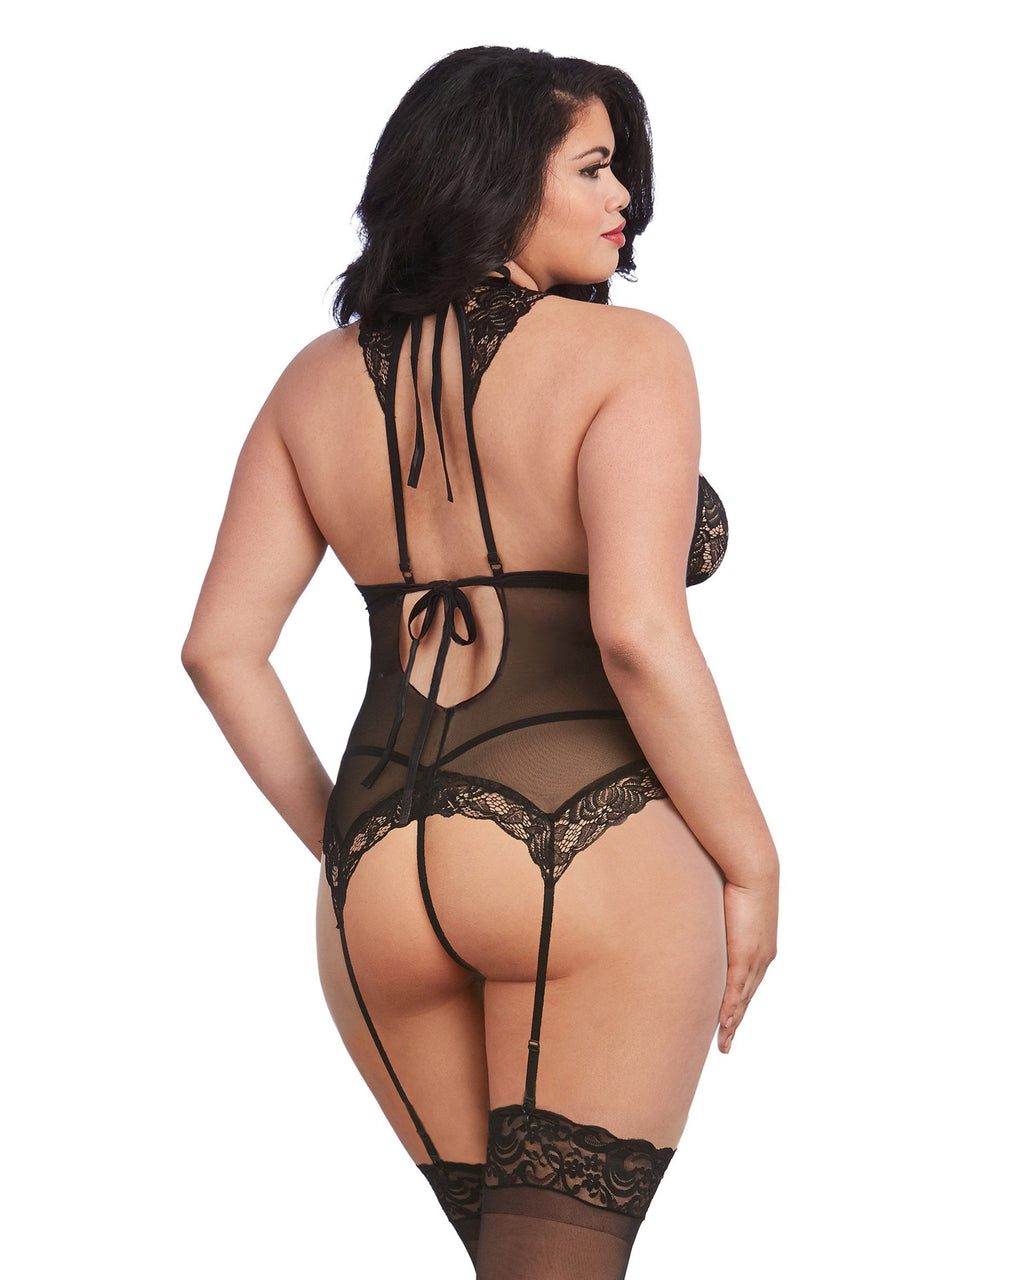 Plus Size Scalloped Bustier-Styled Strappy Garter Lingerie Bustier Dreamgirl International